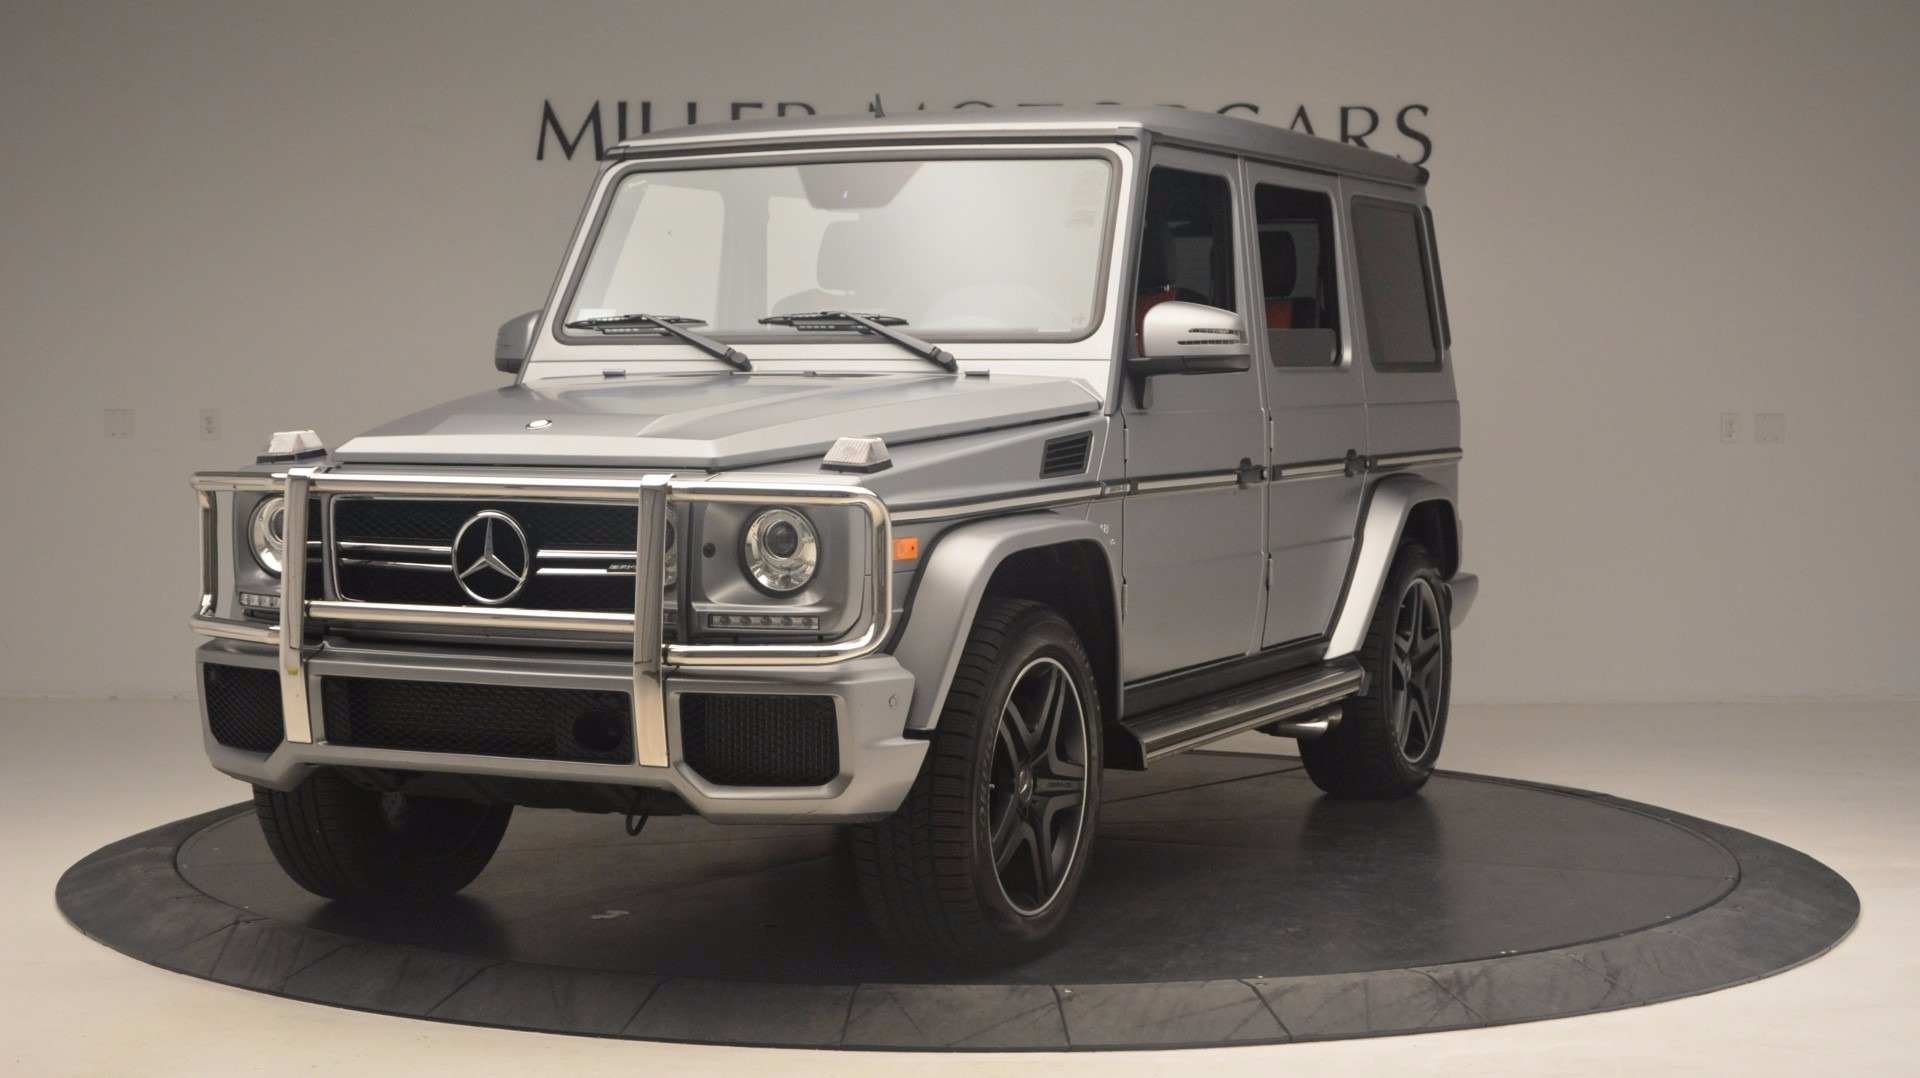 Used 2016 Mercedes Benz G-Class G 63 AMG for sale Sold at Bentley Greenwich in Greenwich CT 06830 1